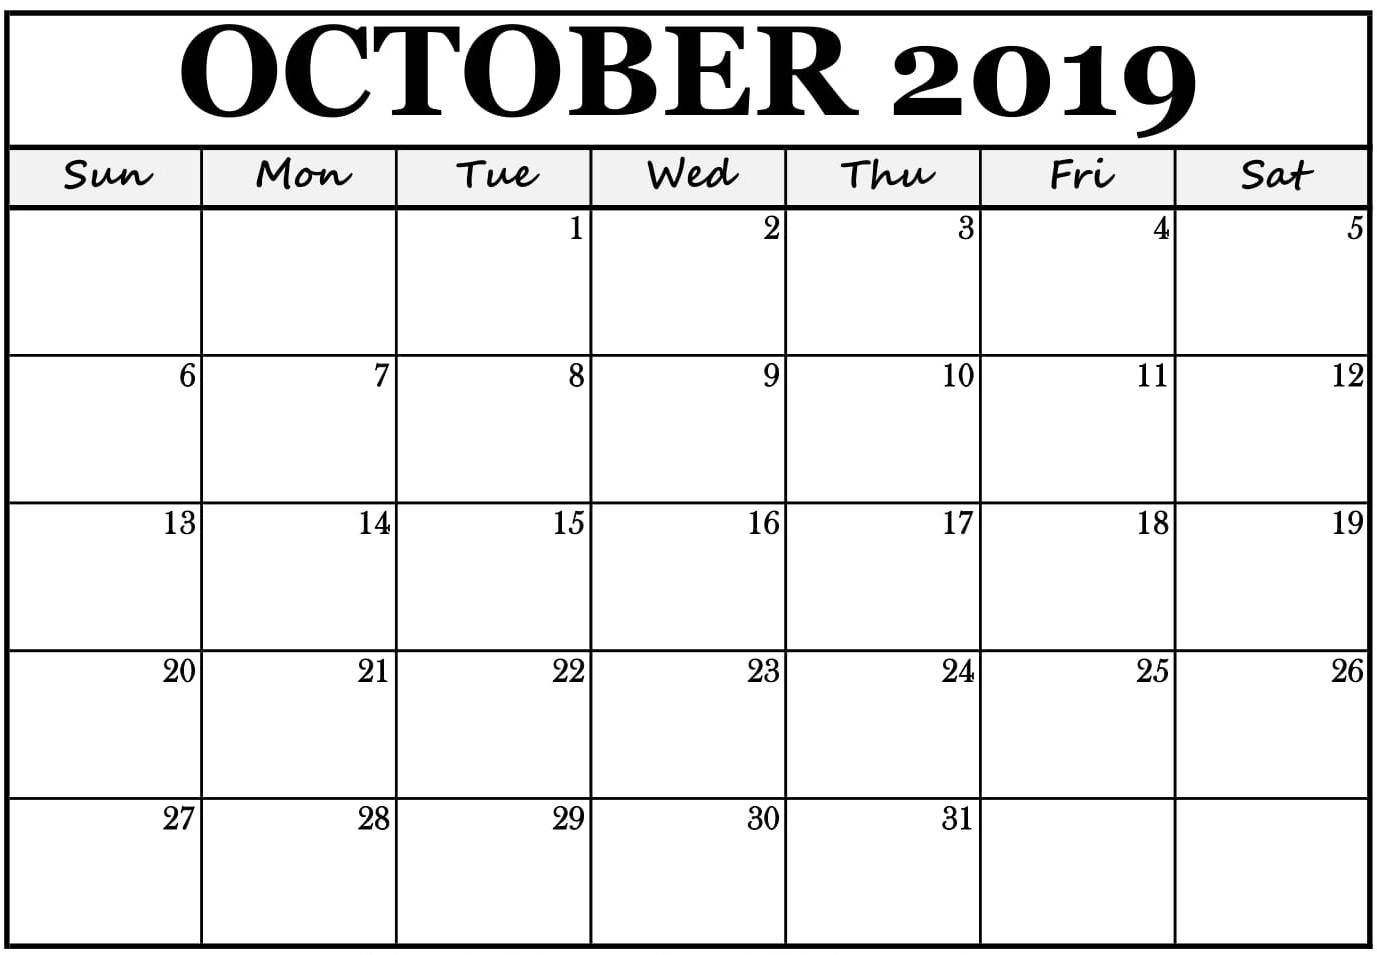 October 2019 Annual Calendar Template